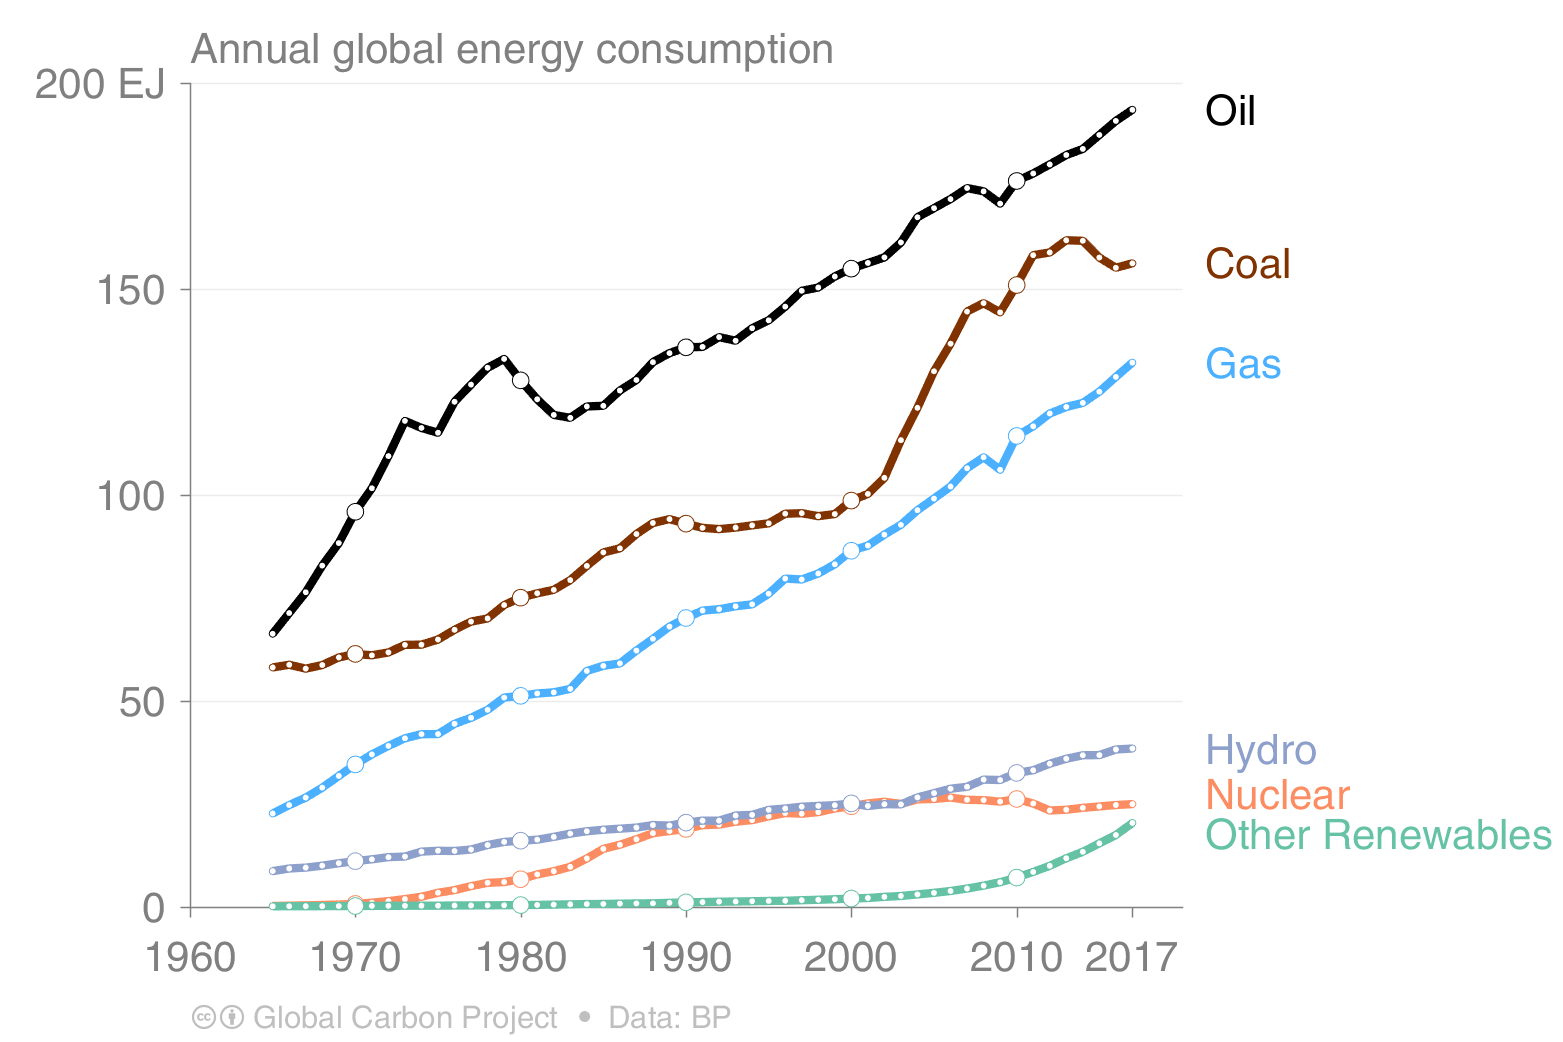 annual global energy consumption of oil, coal, gas, hydro, nuclear and other renewables